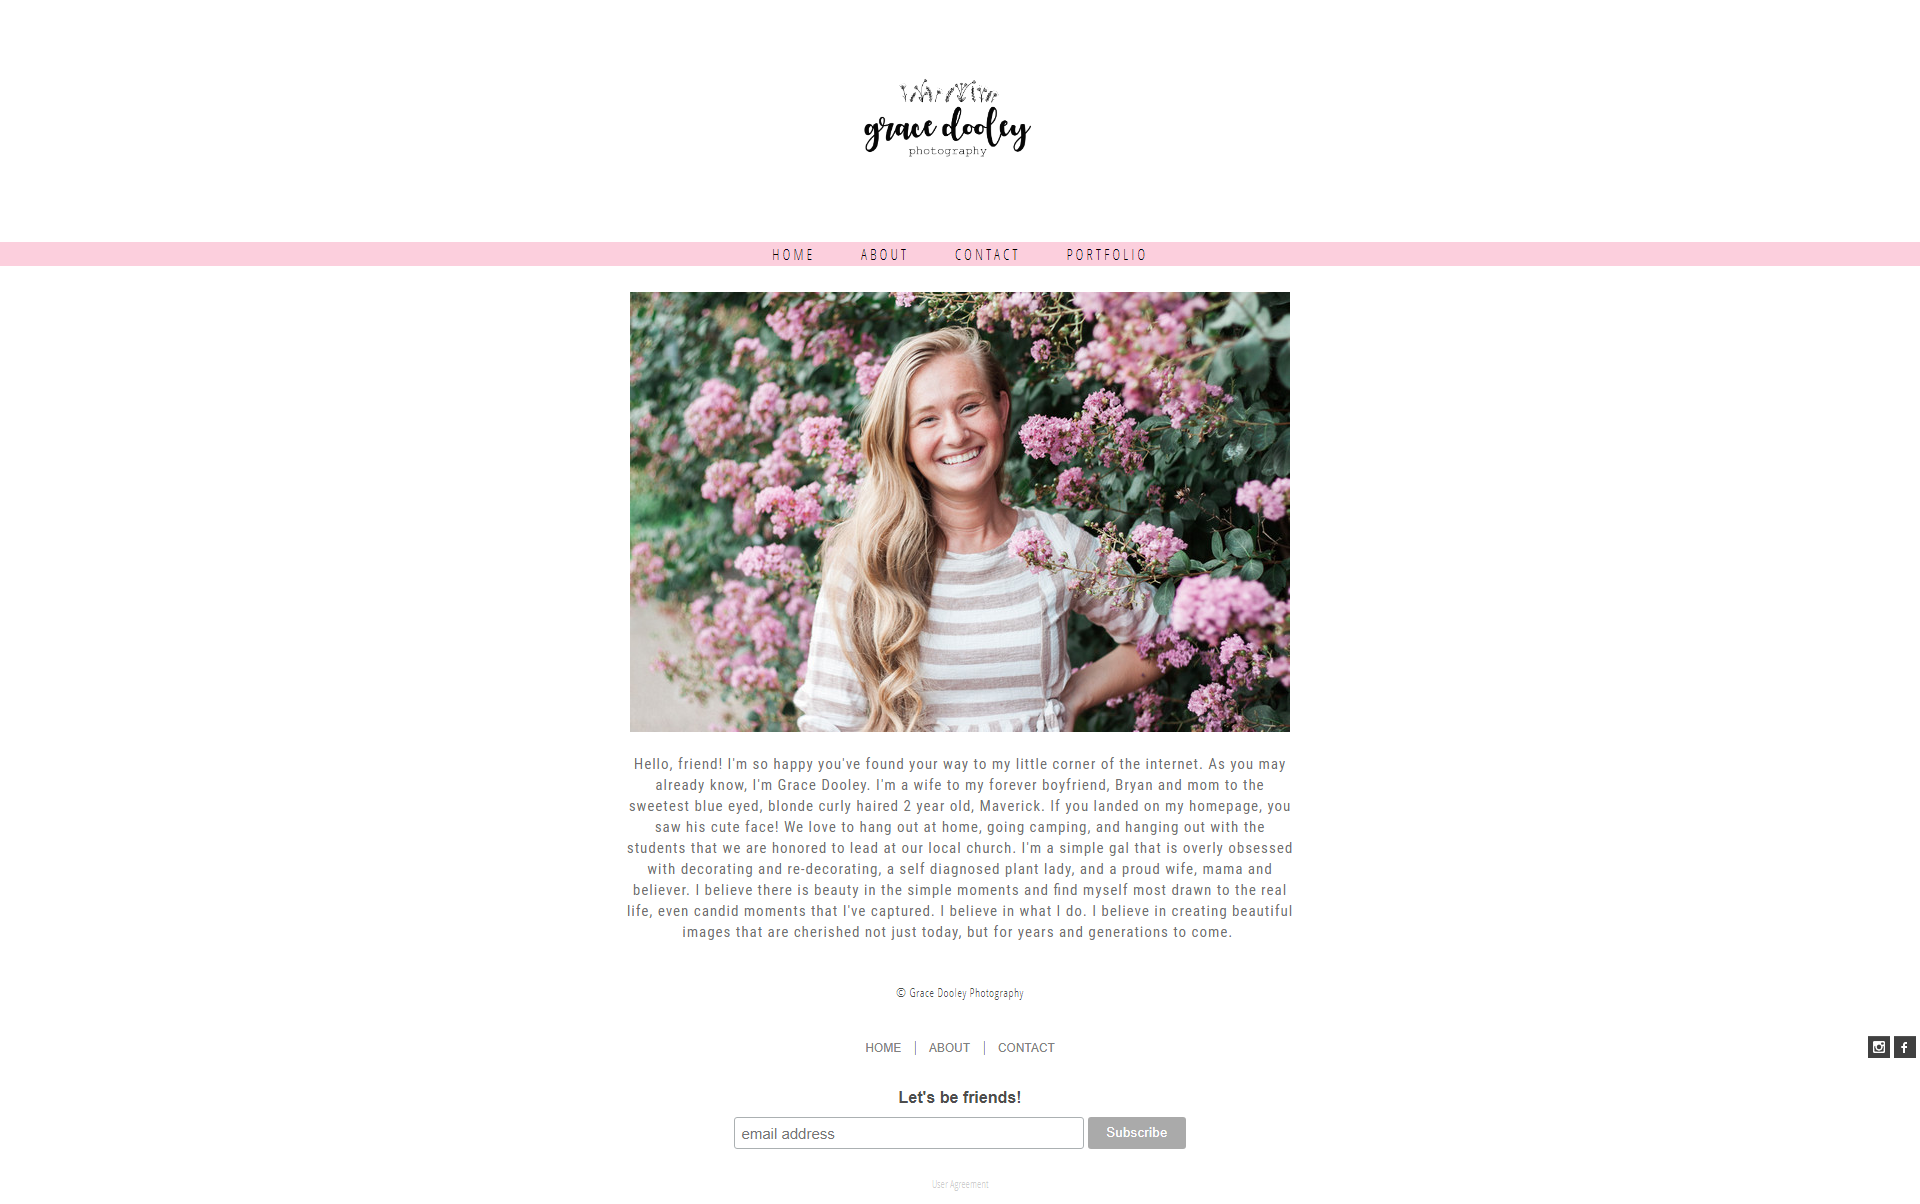 Grace Dooley Photography - Zenfolio